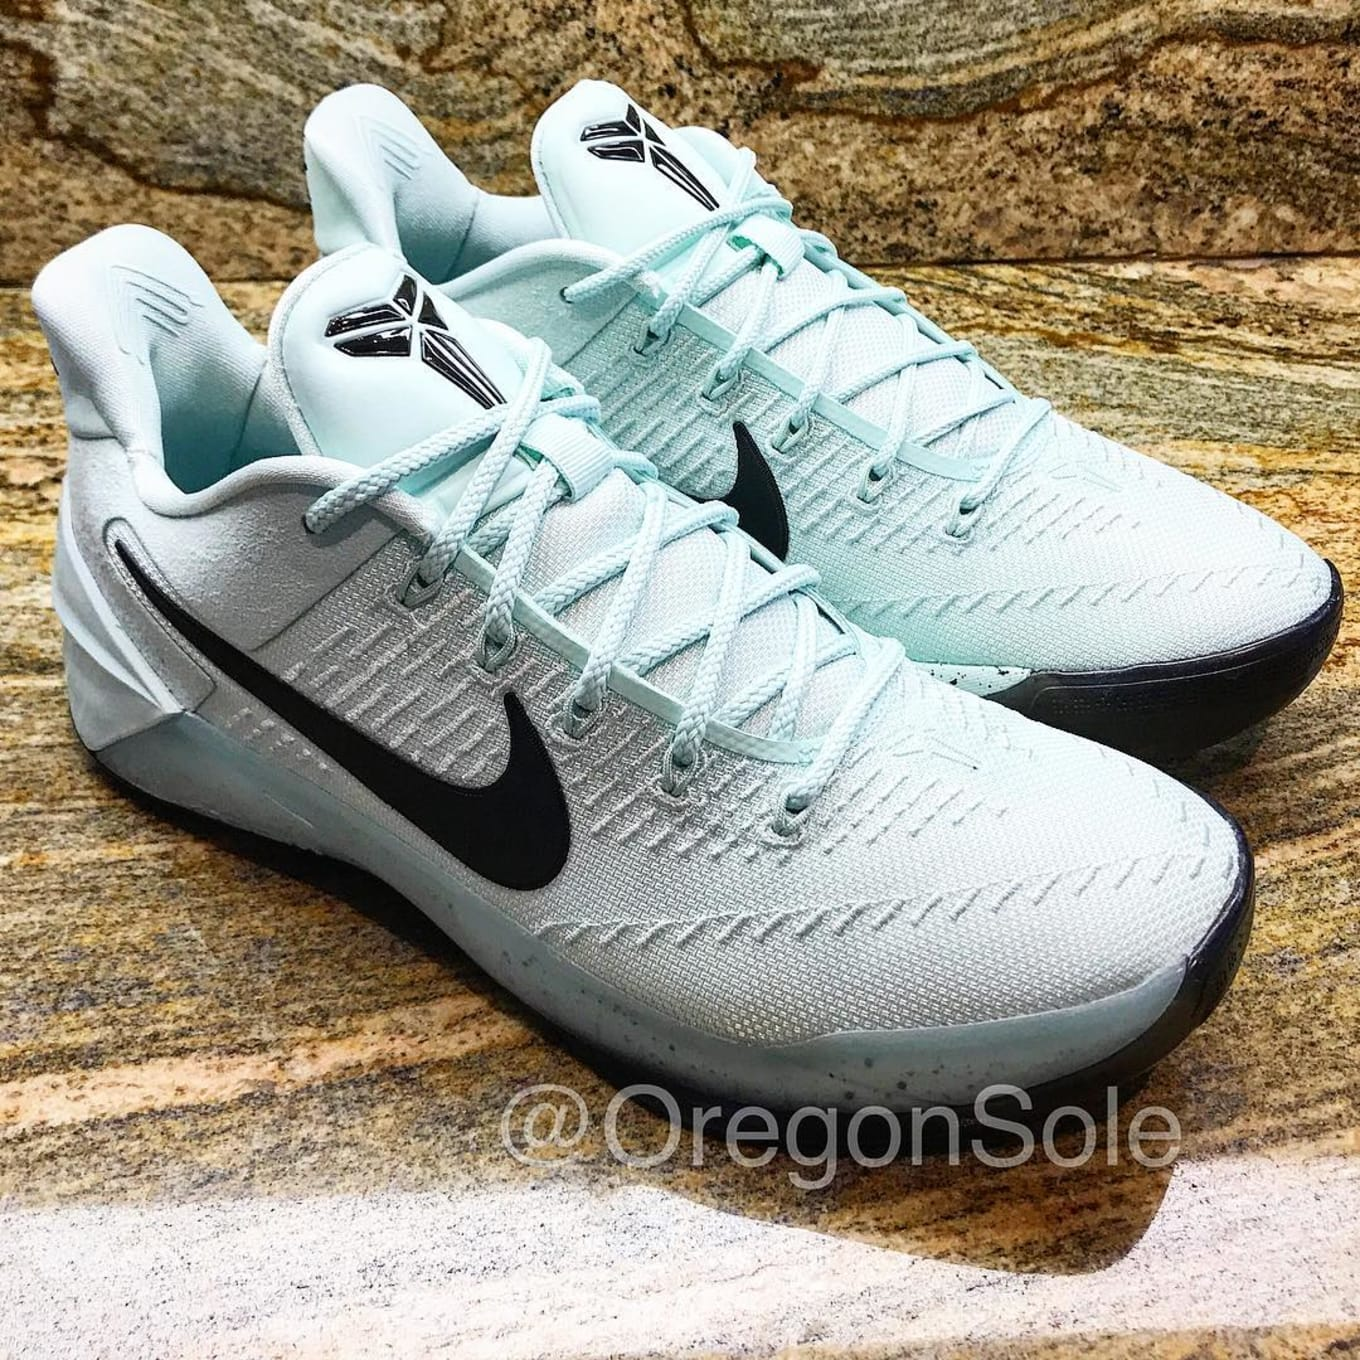 Nike Kobe A D Igloo Release Date 852425 300 Sole Collector